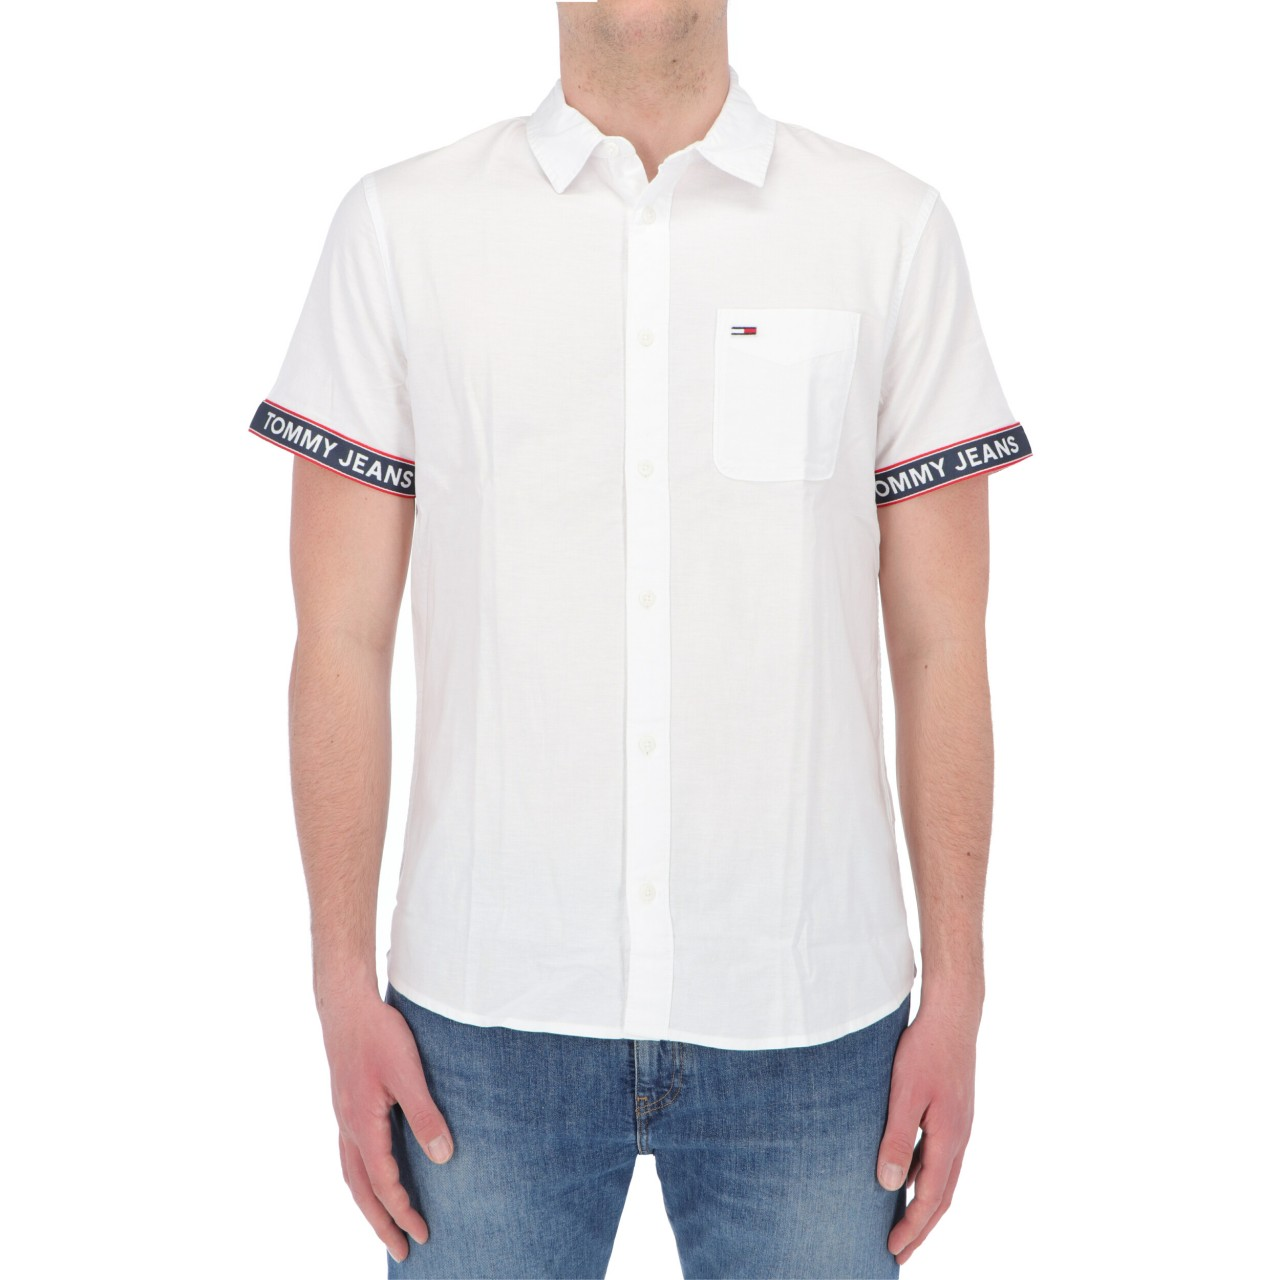 Tommy hilfiger Uomo Camicia Tommy Hilfiger Jeans Uomo Tape Short Sleeve 10143P